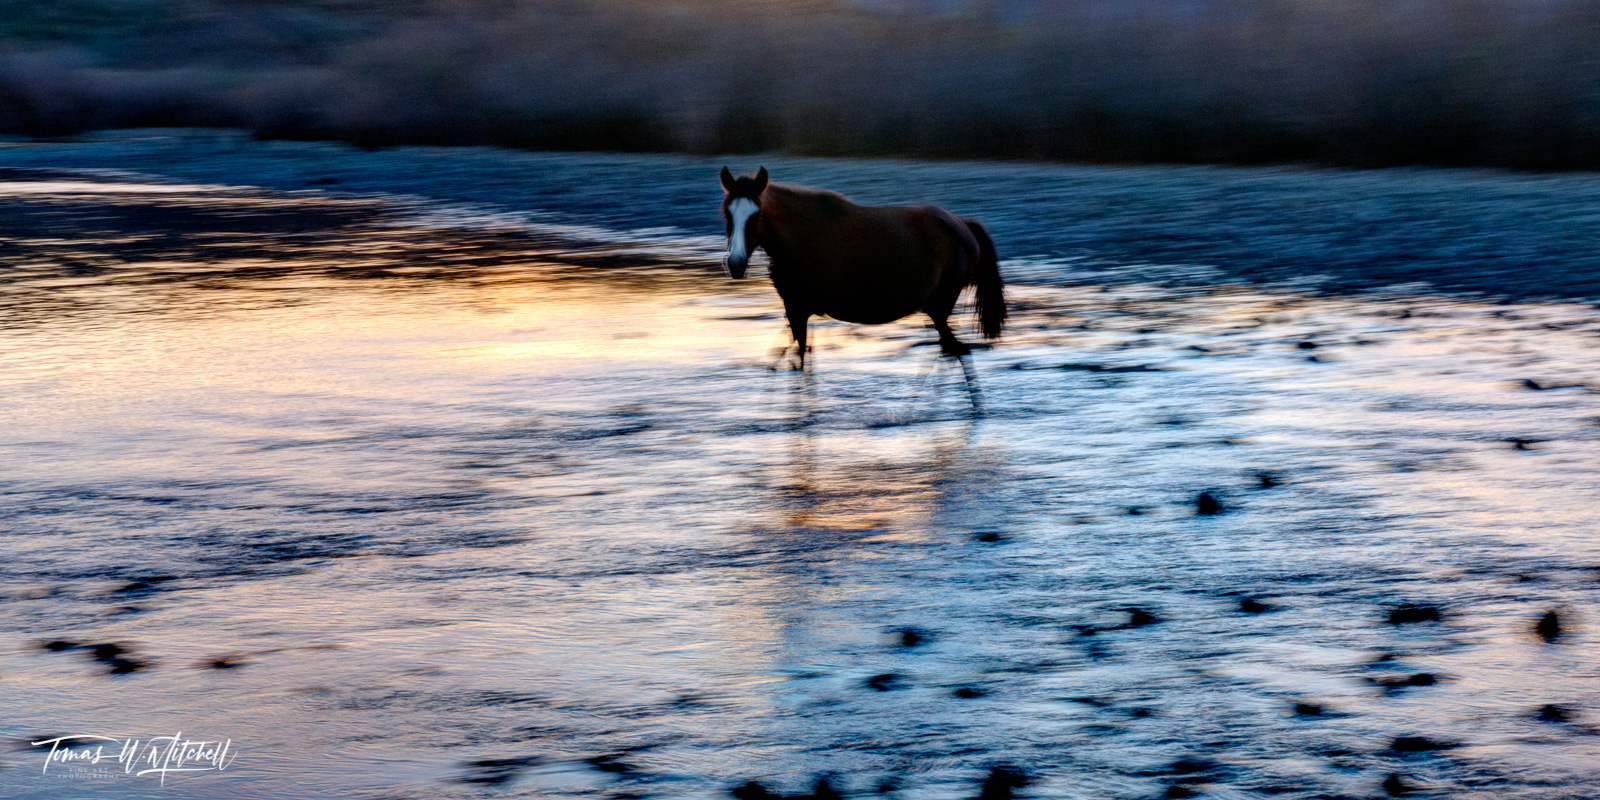 limited edition, fine art, prints, photograph, salt river, arizona, wild horses, abstract, blurred, sunset, horse, water, strider, photo